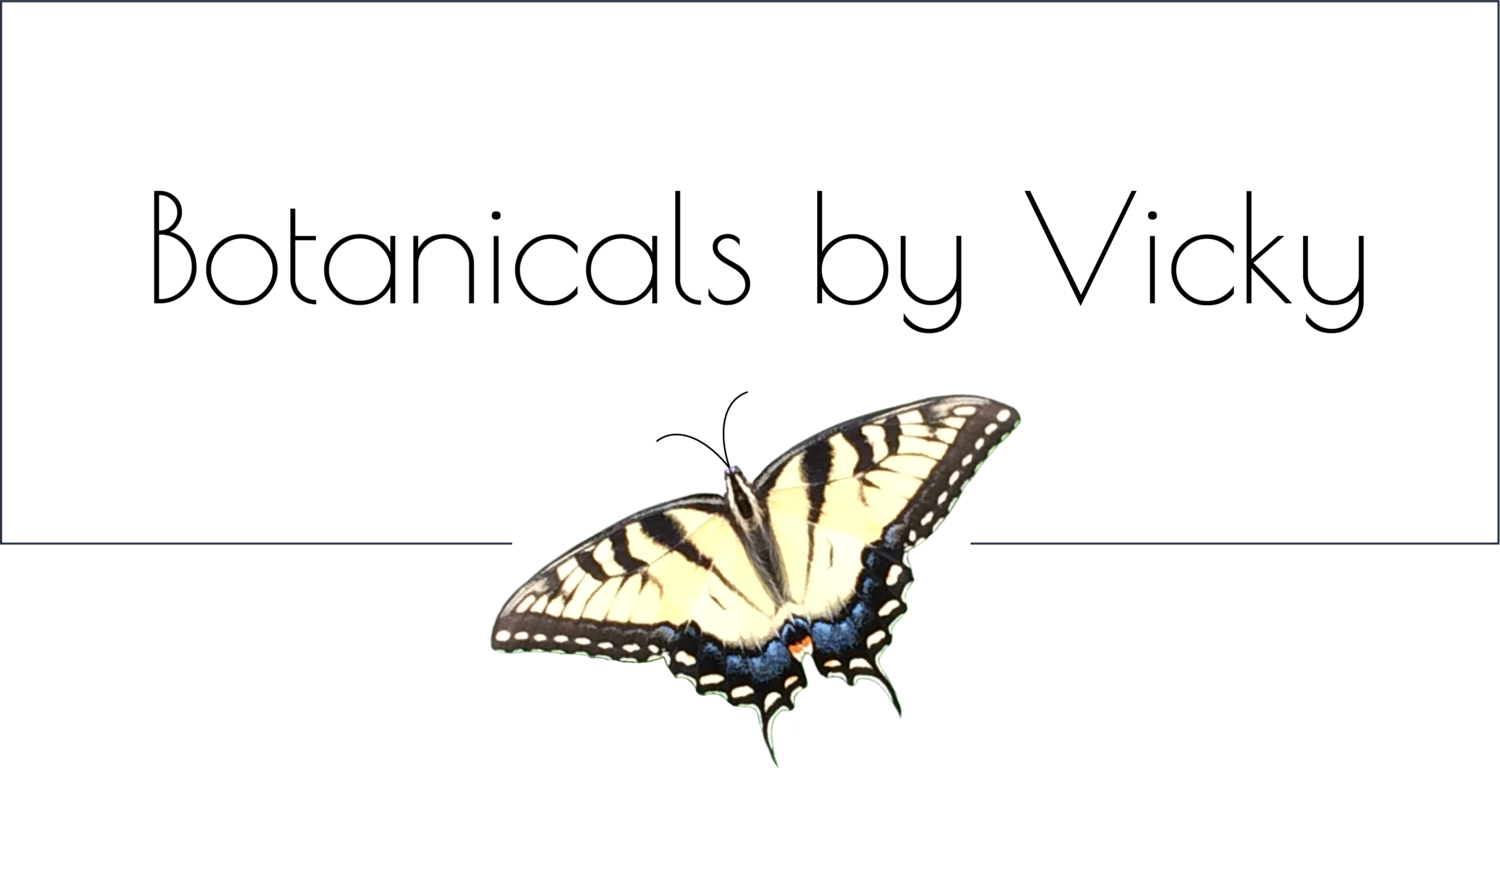 Botanicals by Vicky